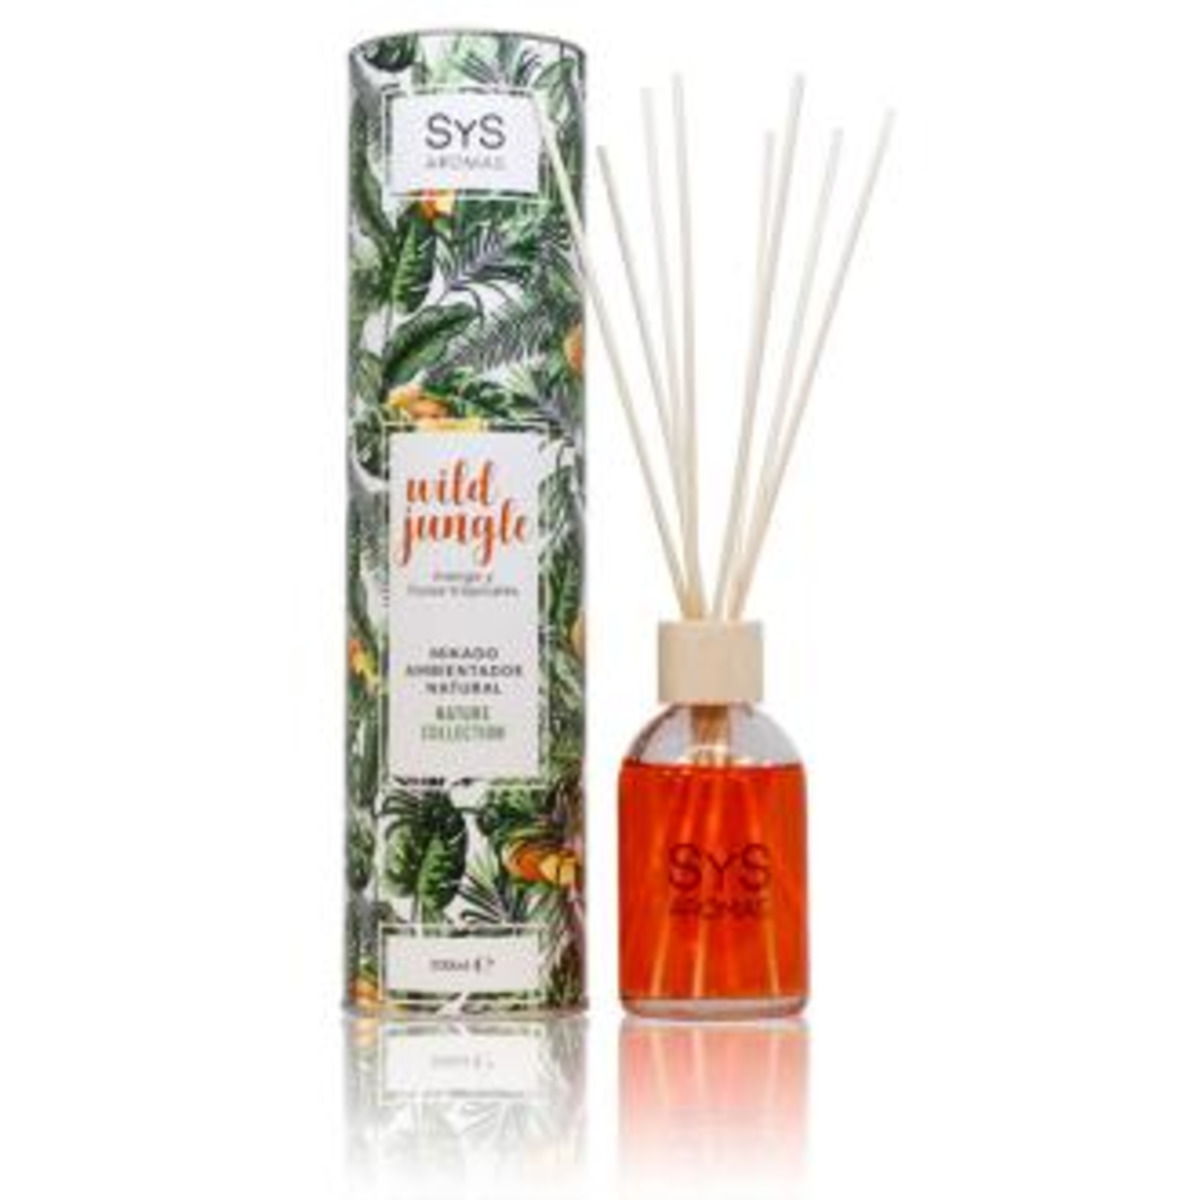 AMBIENTADOR MIKADO NATURE wild jungle 100ml.